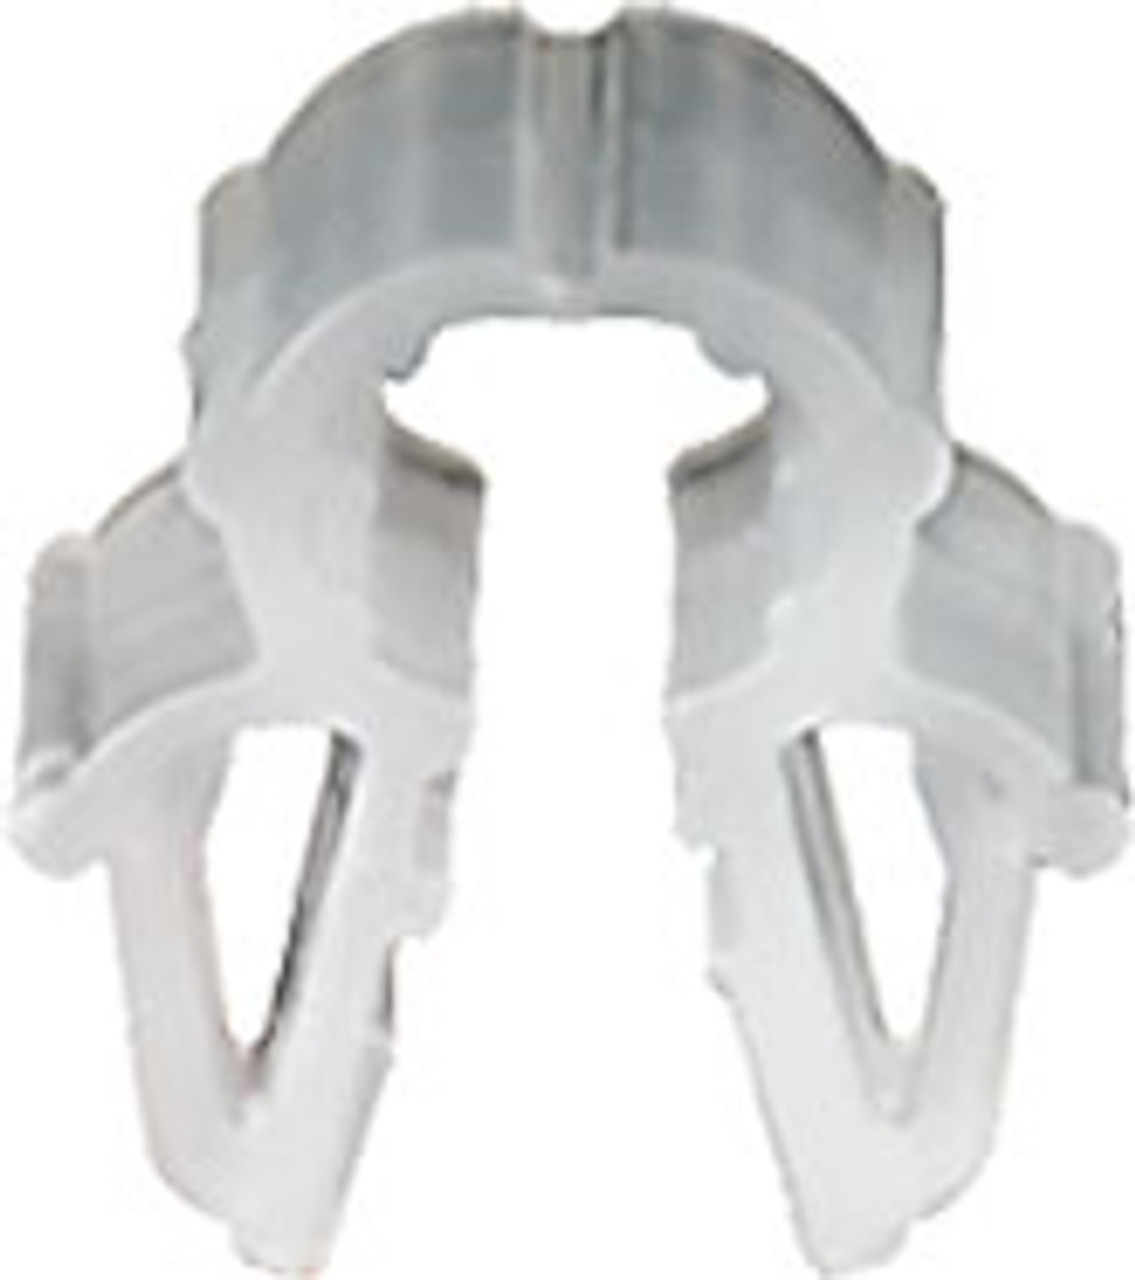 Tube Or Cable Routing Clip Holds 5mm Diameter Tube/Cable Snaps Into 6mm Hole Natural Nylon Overall Height: 15mm Subaru BRZ, Forester, Impreza, Legacy, Outback, B9 Tribeca & WRX 1995 - On Subaru OEM# 57371GA070 25 Per Box